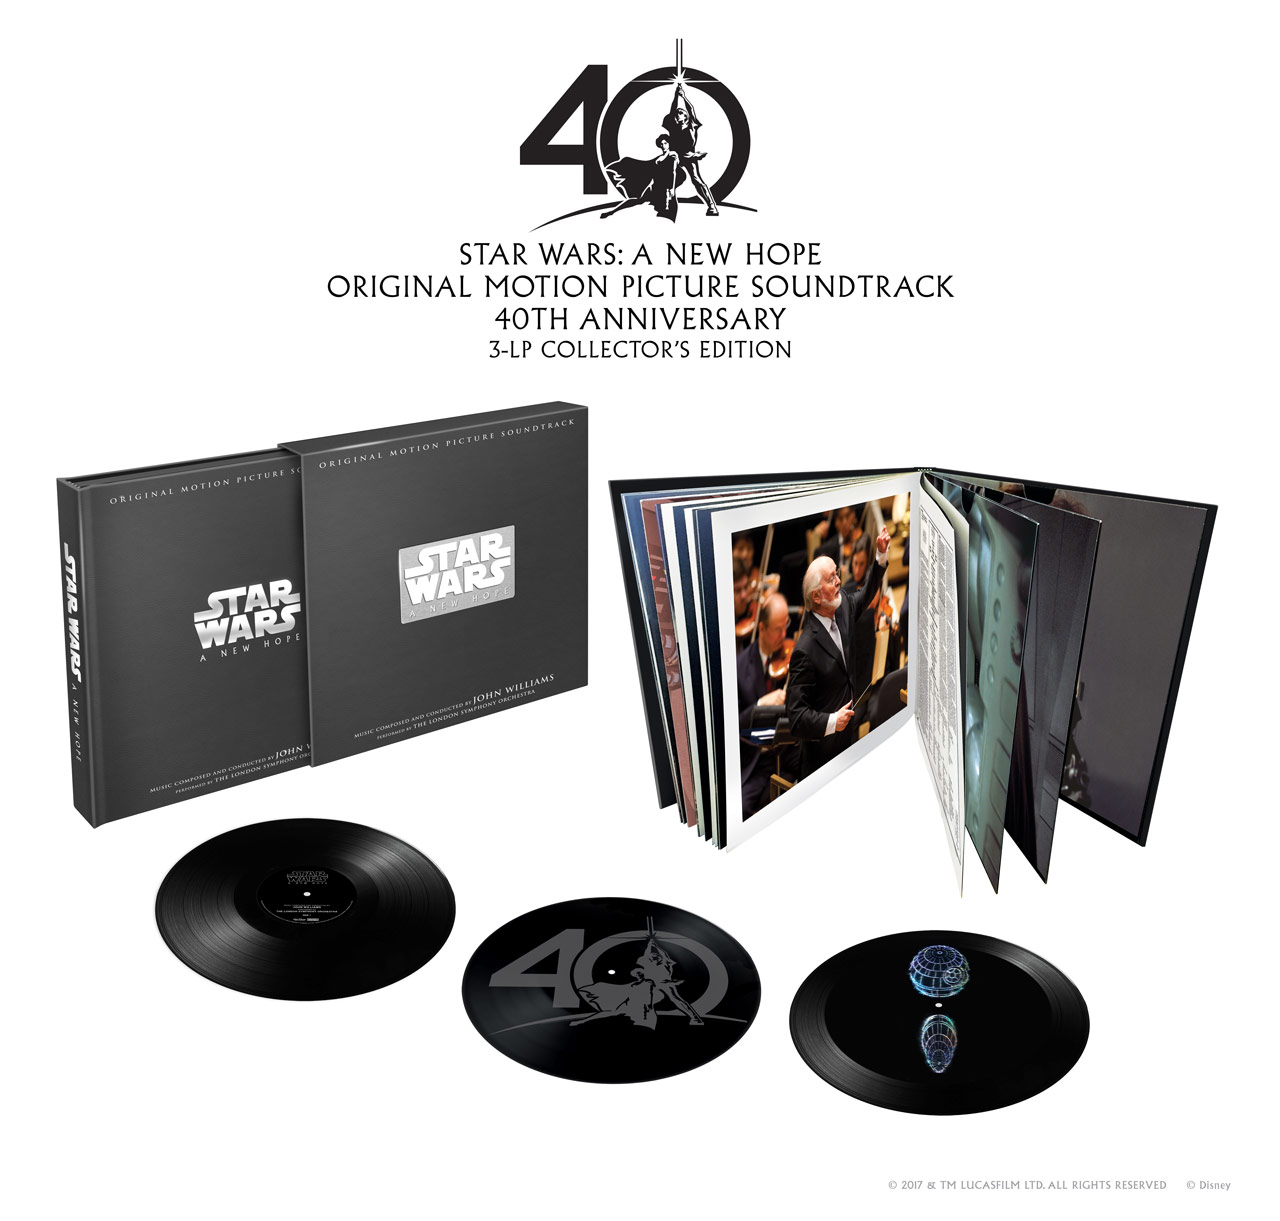 star-wars-a-new-hope-vinyl-box-set.jpg